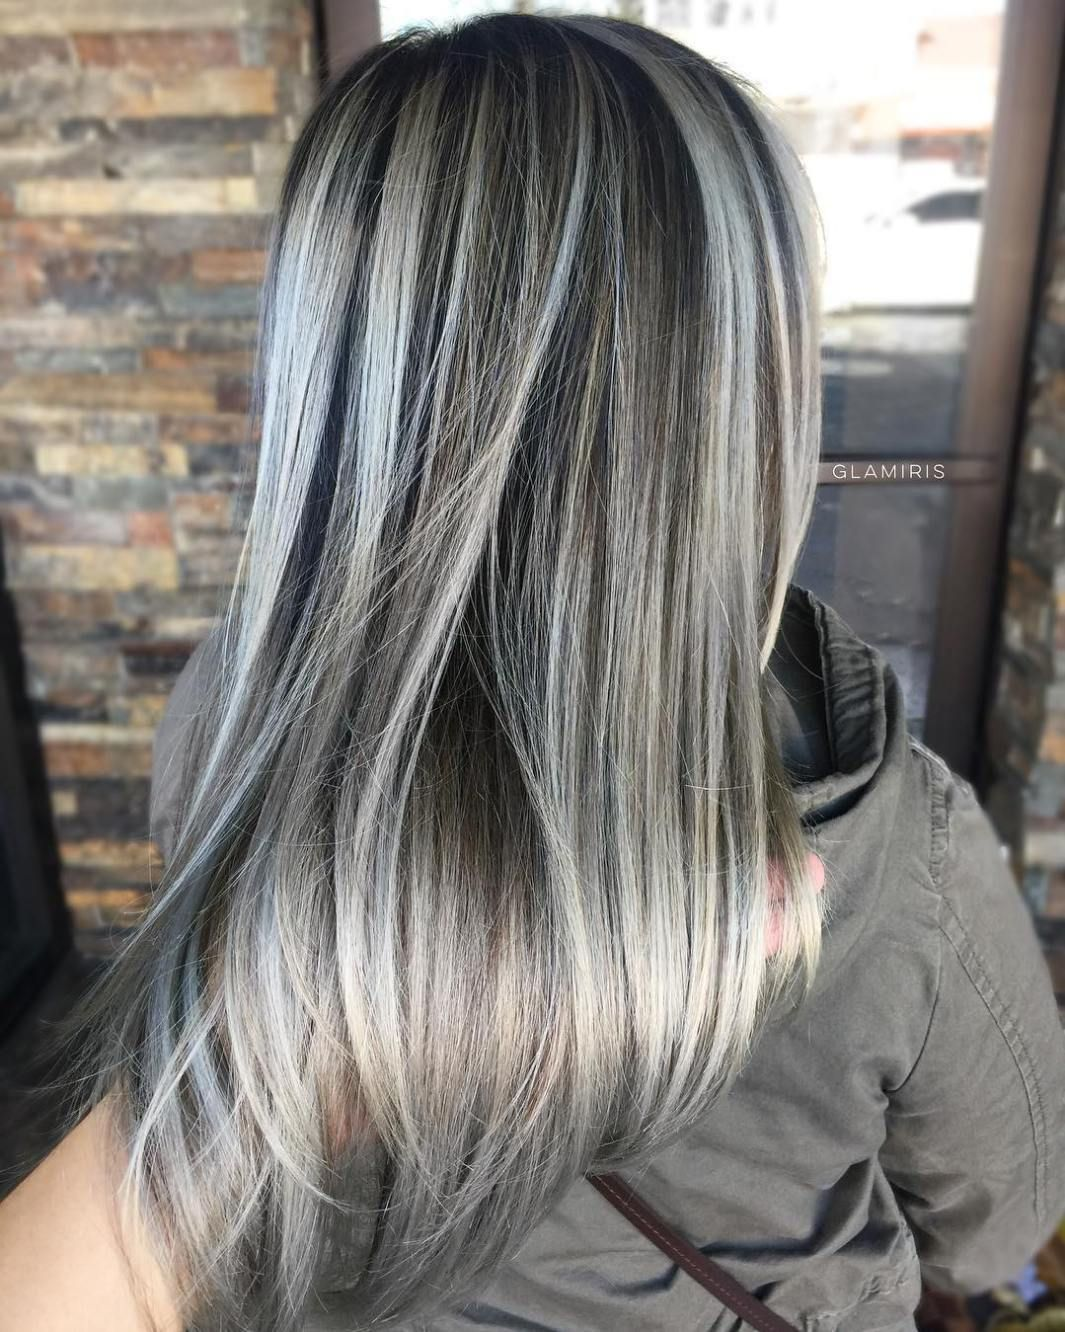 Dark Brown Hair With Ash Blonde Highlights Brown Hair With Ash Blonde Highlights Ash Blonde Highlights Grey Hair Color